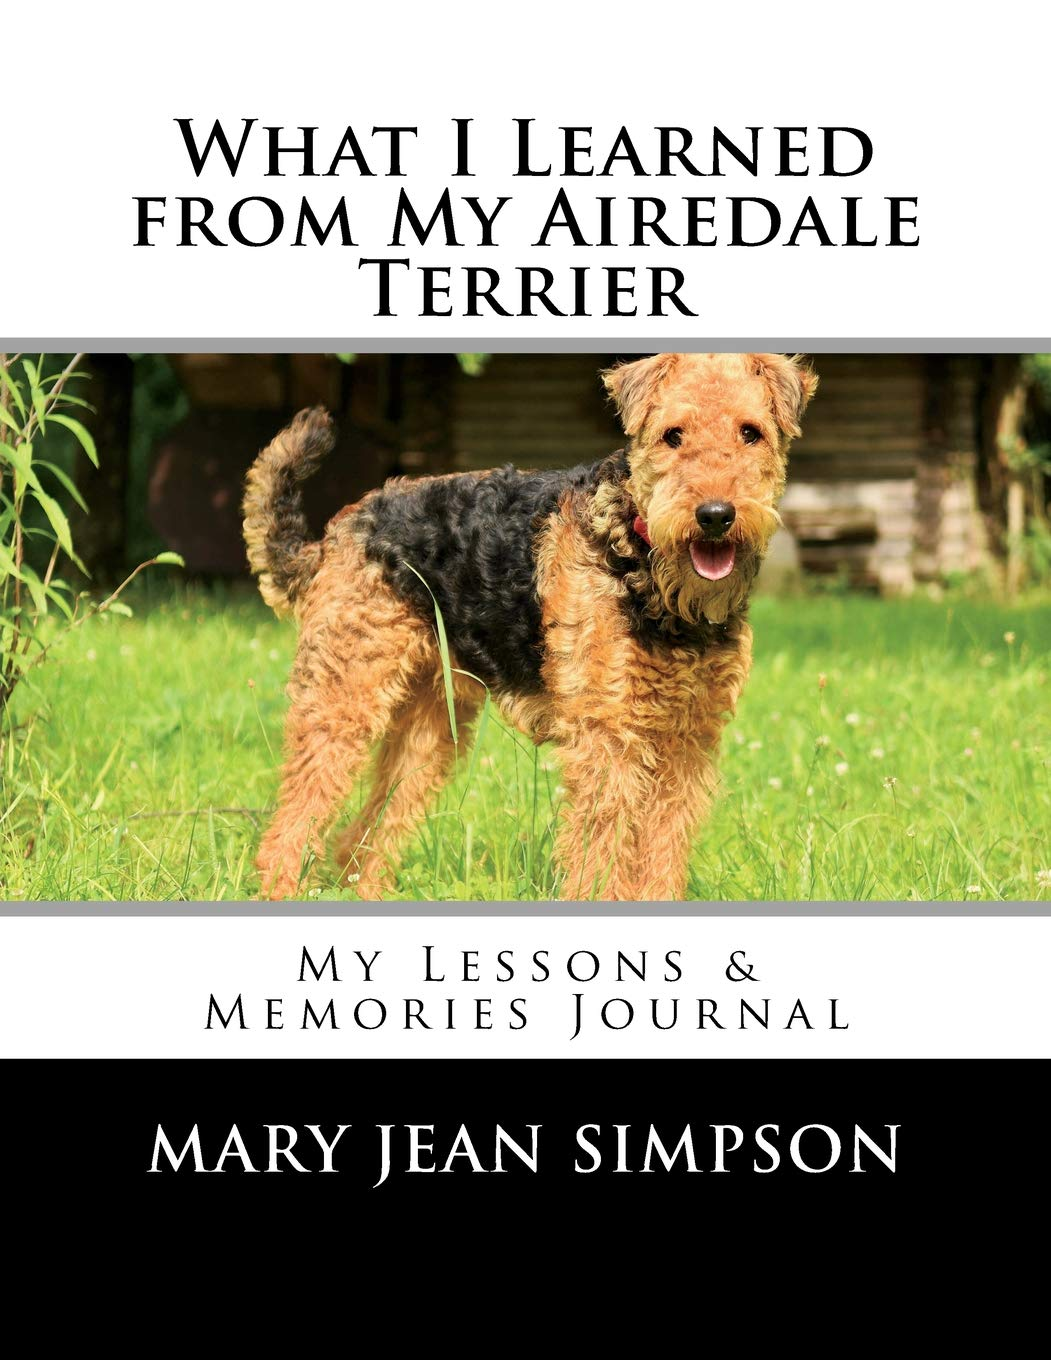 What I Learned from My Airedale Terrier: My Lessons & Memories Journal